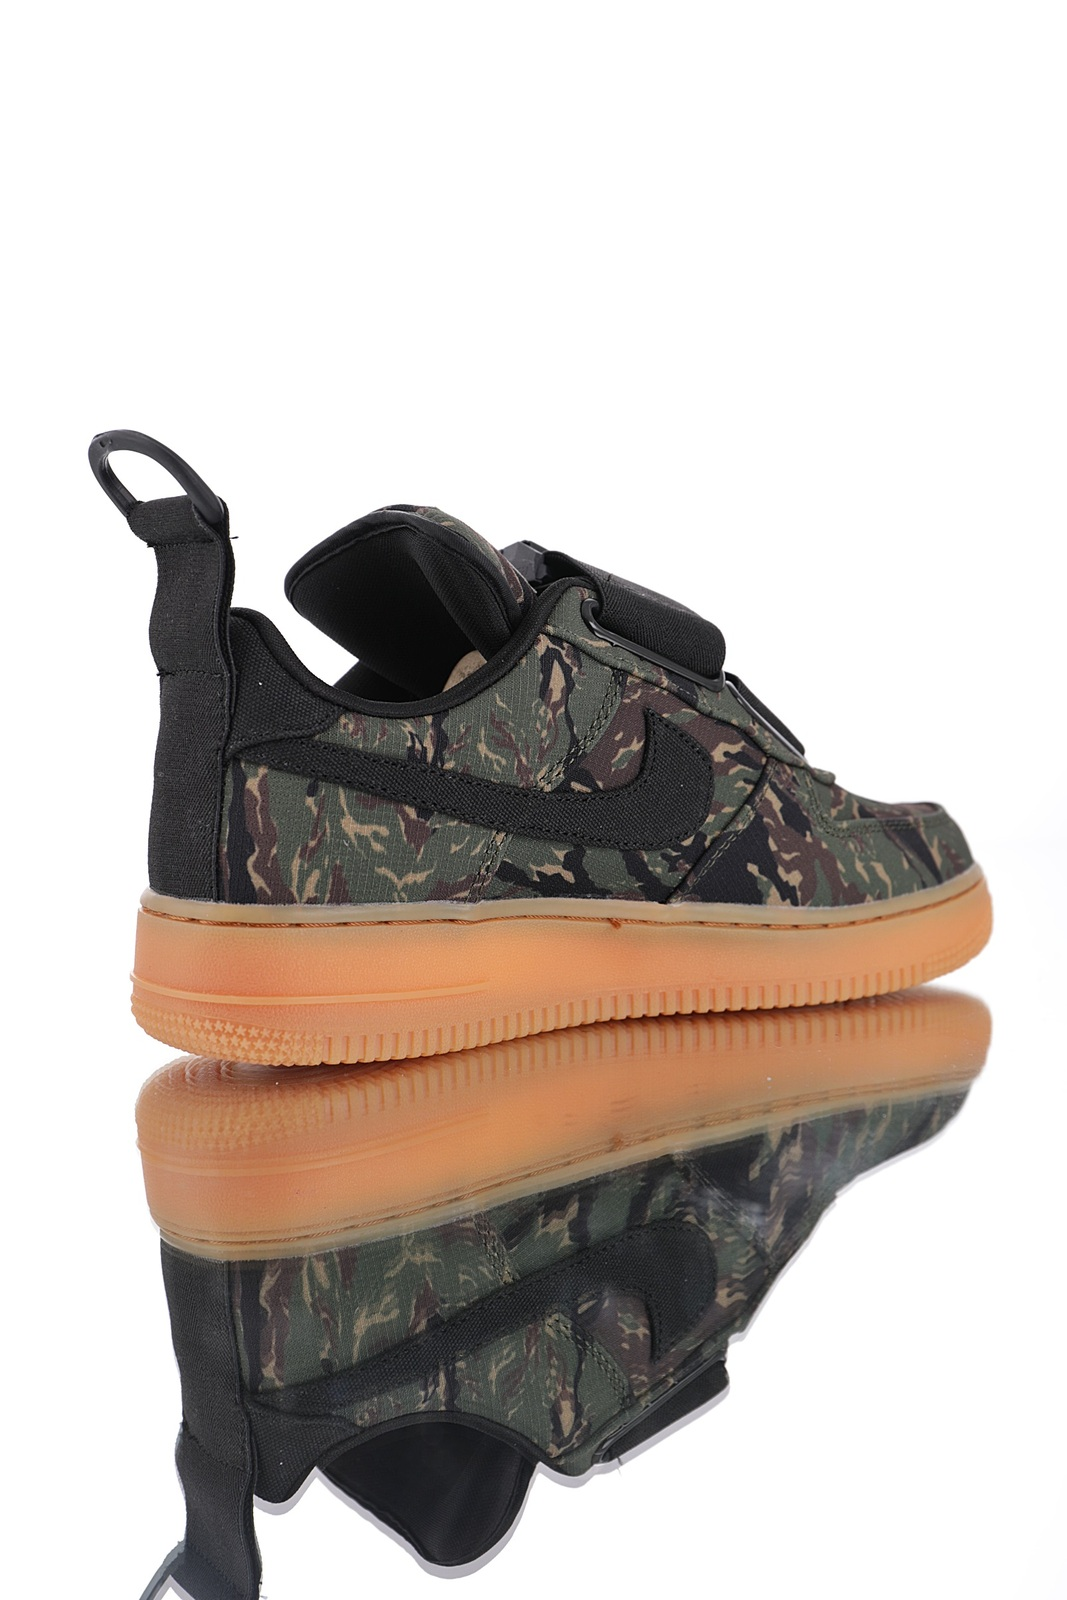 1142d91e887cb Carhartt x Nike Air Force 1 Low Utility WIP and 50 similar items